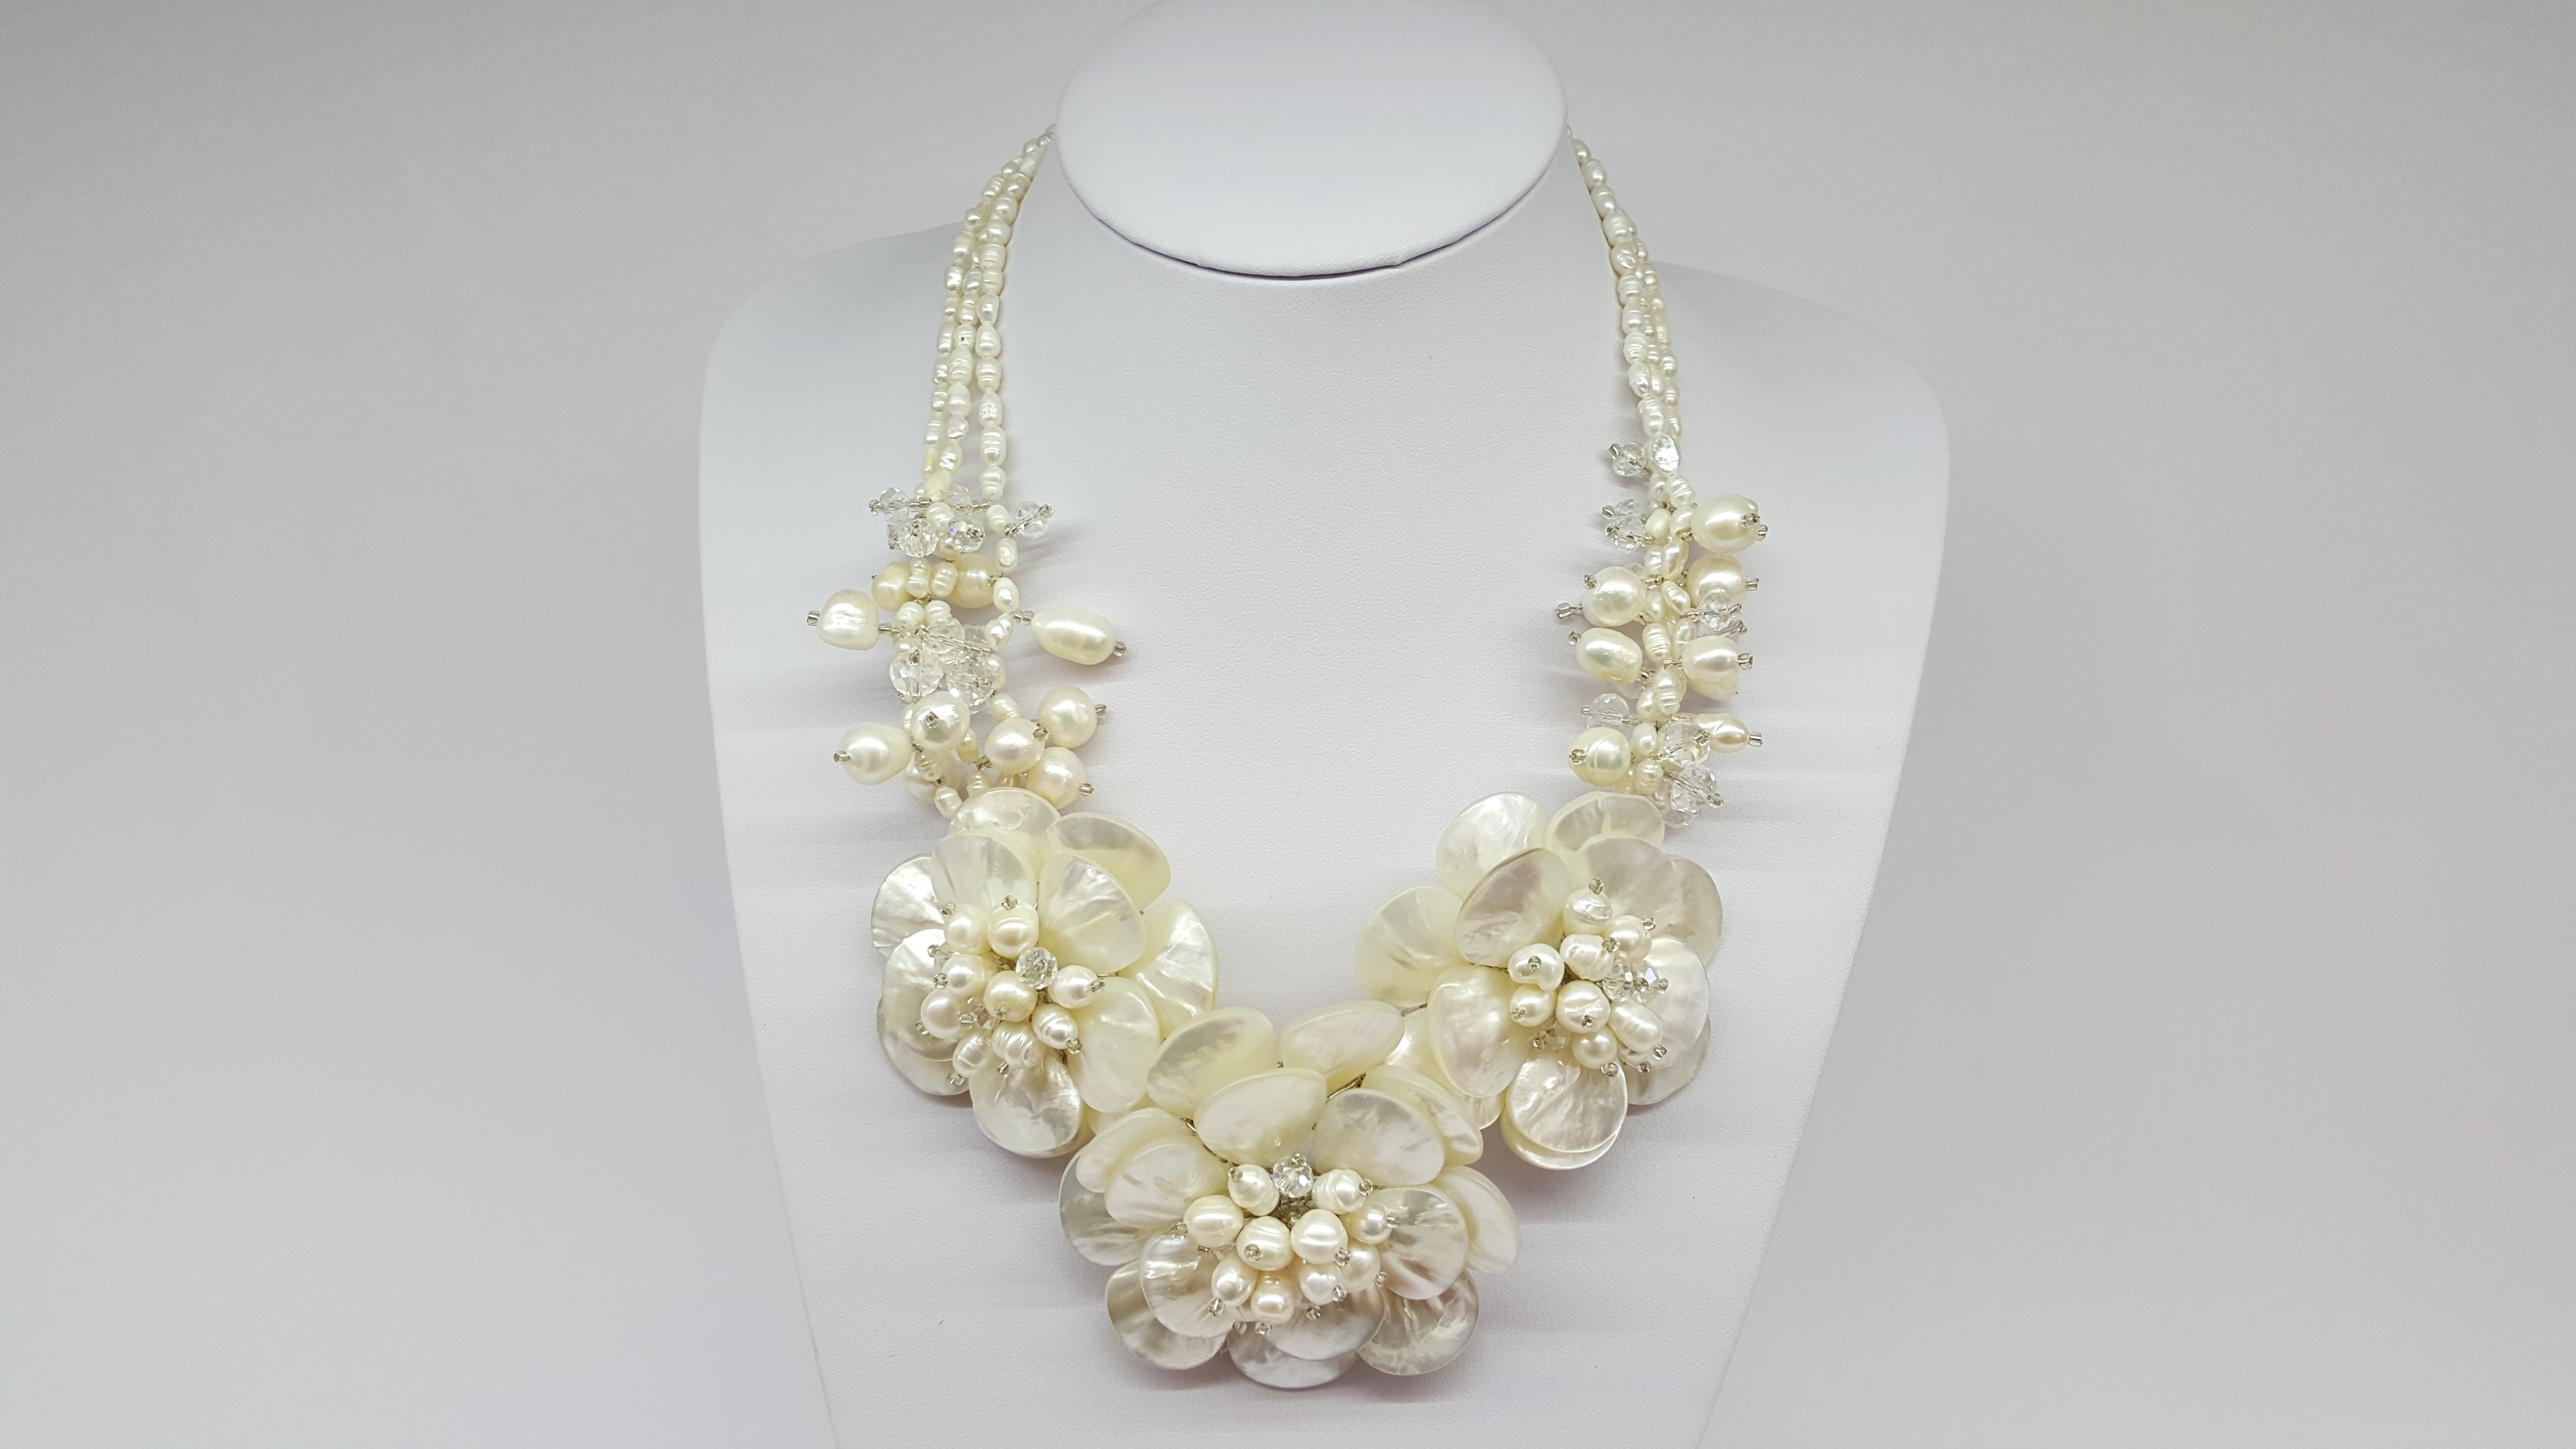 Necklace White Mother Of Pearl Vintage Shop In Mykonos